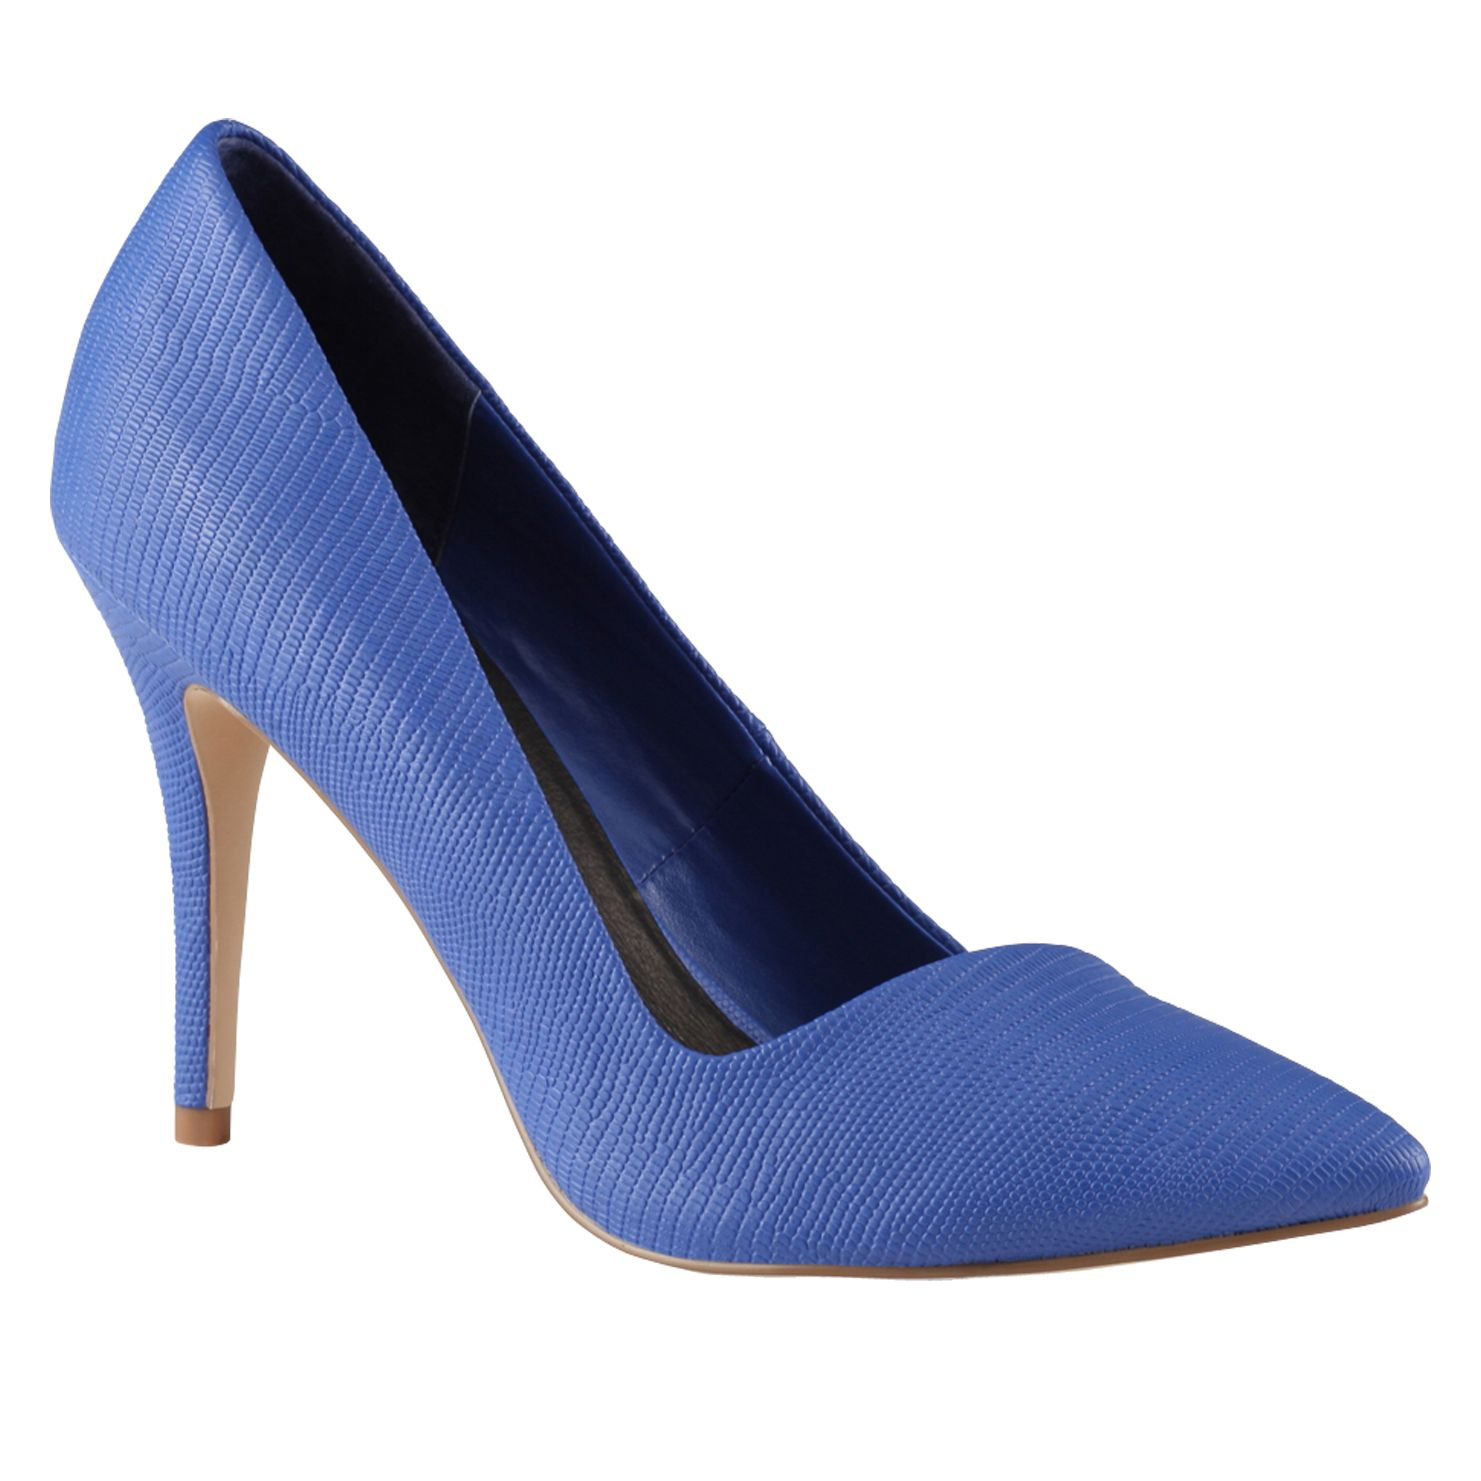 Ocaria pointed toe court shoes